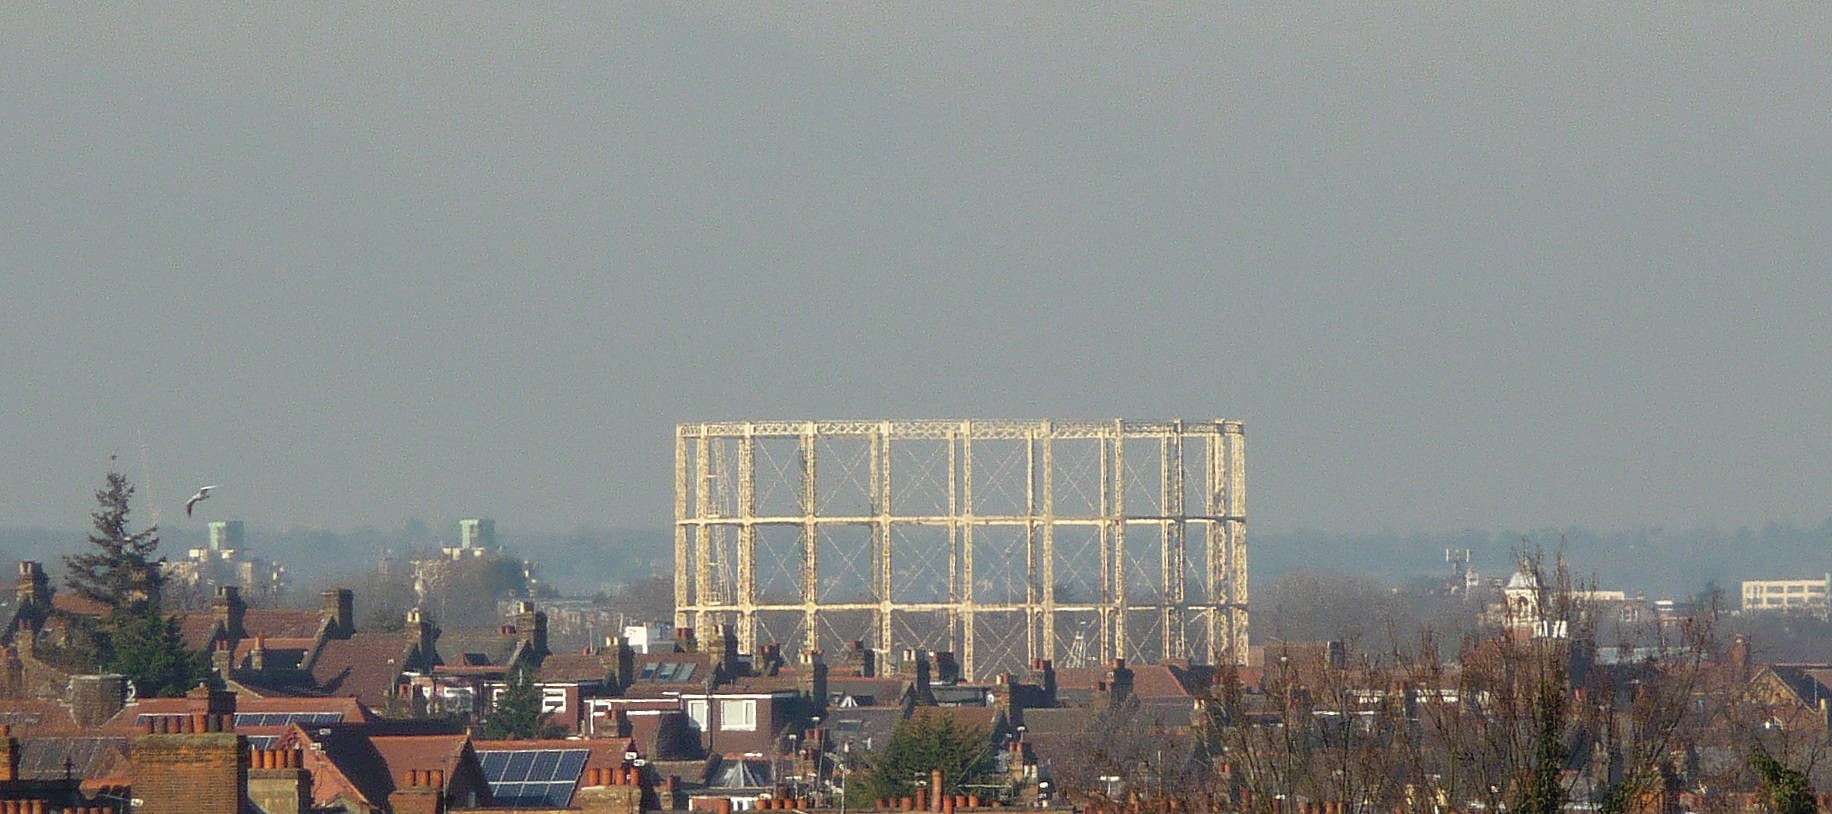 Hornsey No 3 L N from Katherine Close, N4. 21 JAN 17 R Carr